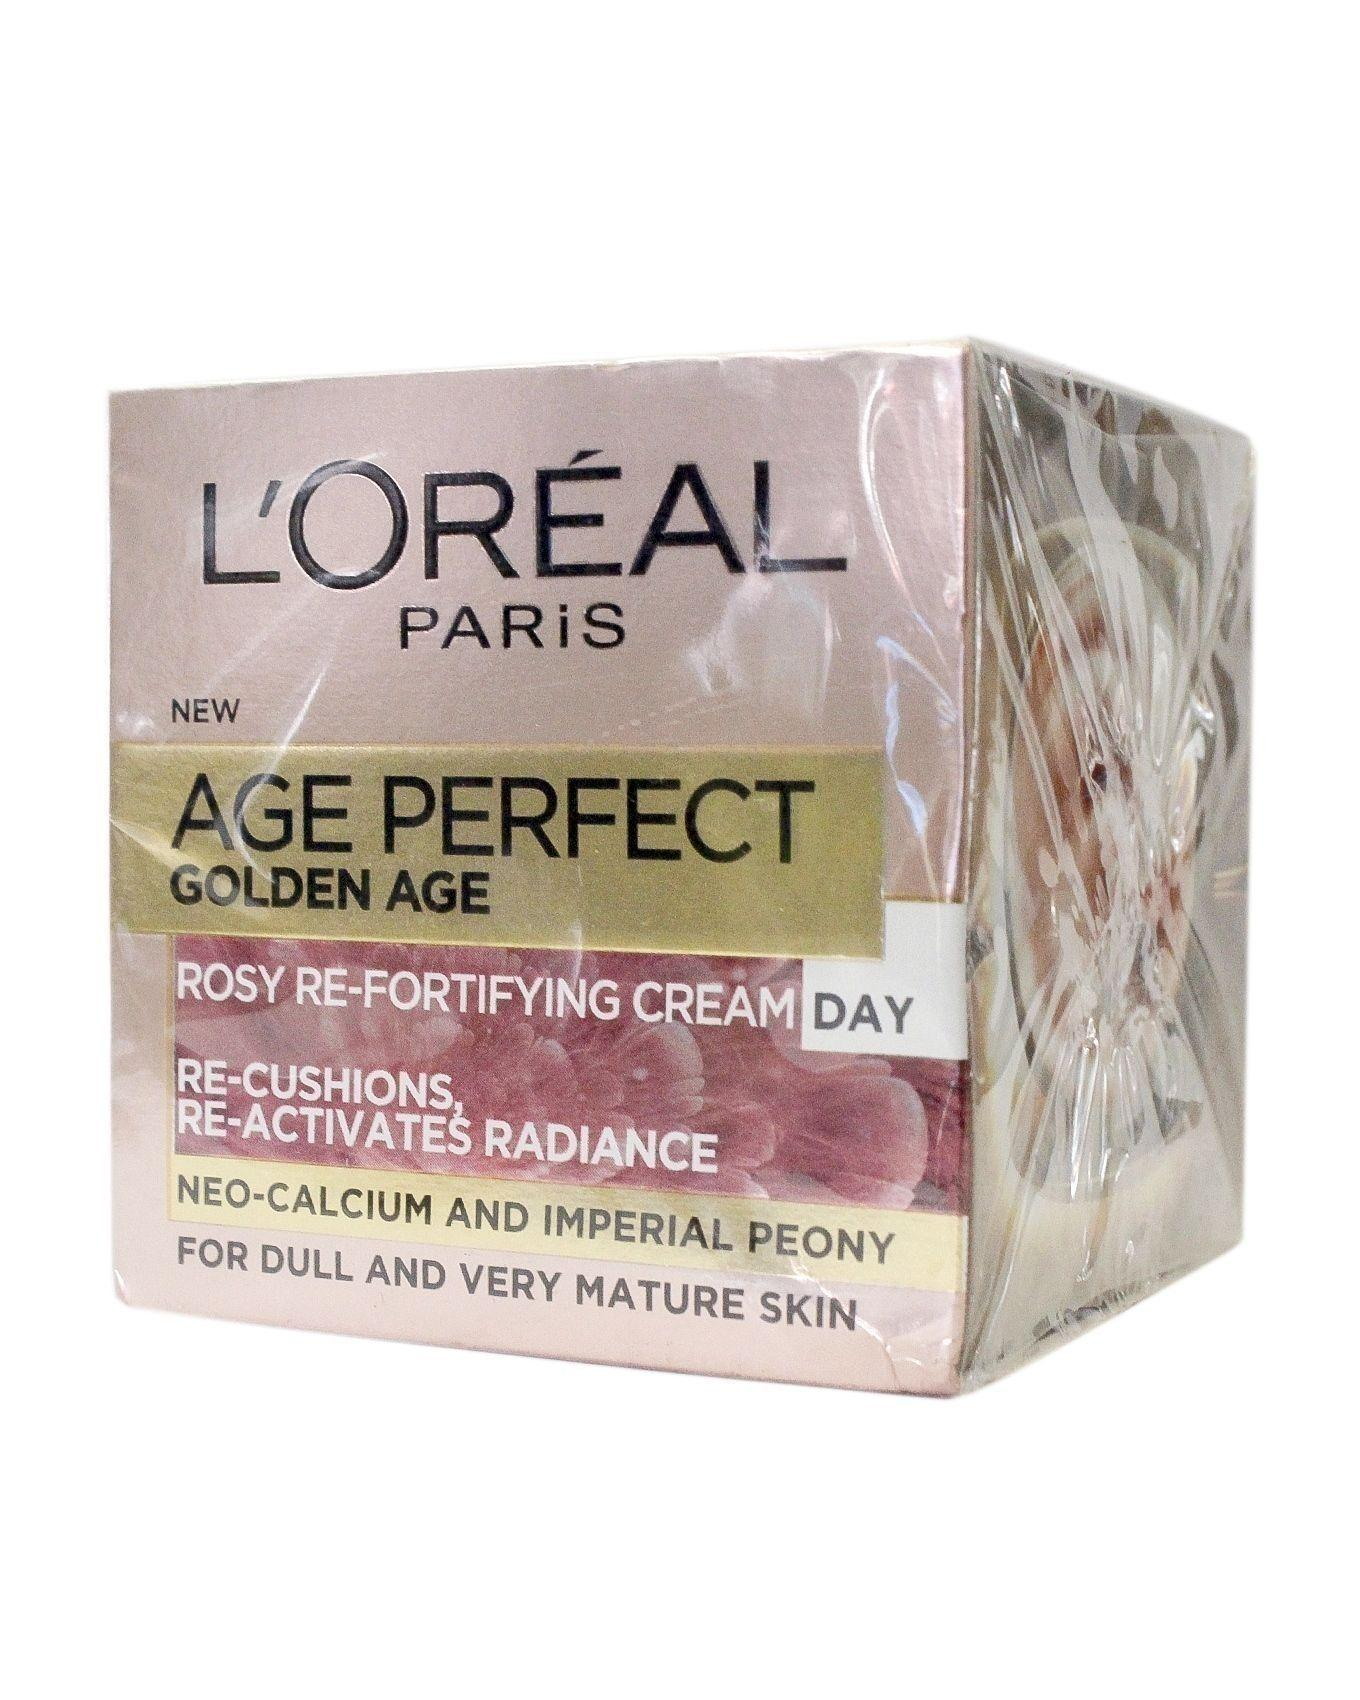 Buy Loreal Paris Tinted Moisturizer At Best Prices Online In Sri White Perfect Day Cream Spf 17 Pa Whitening Even Tone Age Golden 50ml 2830